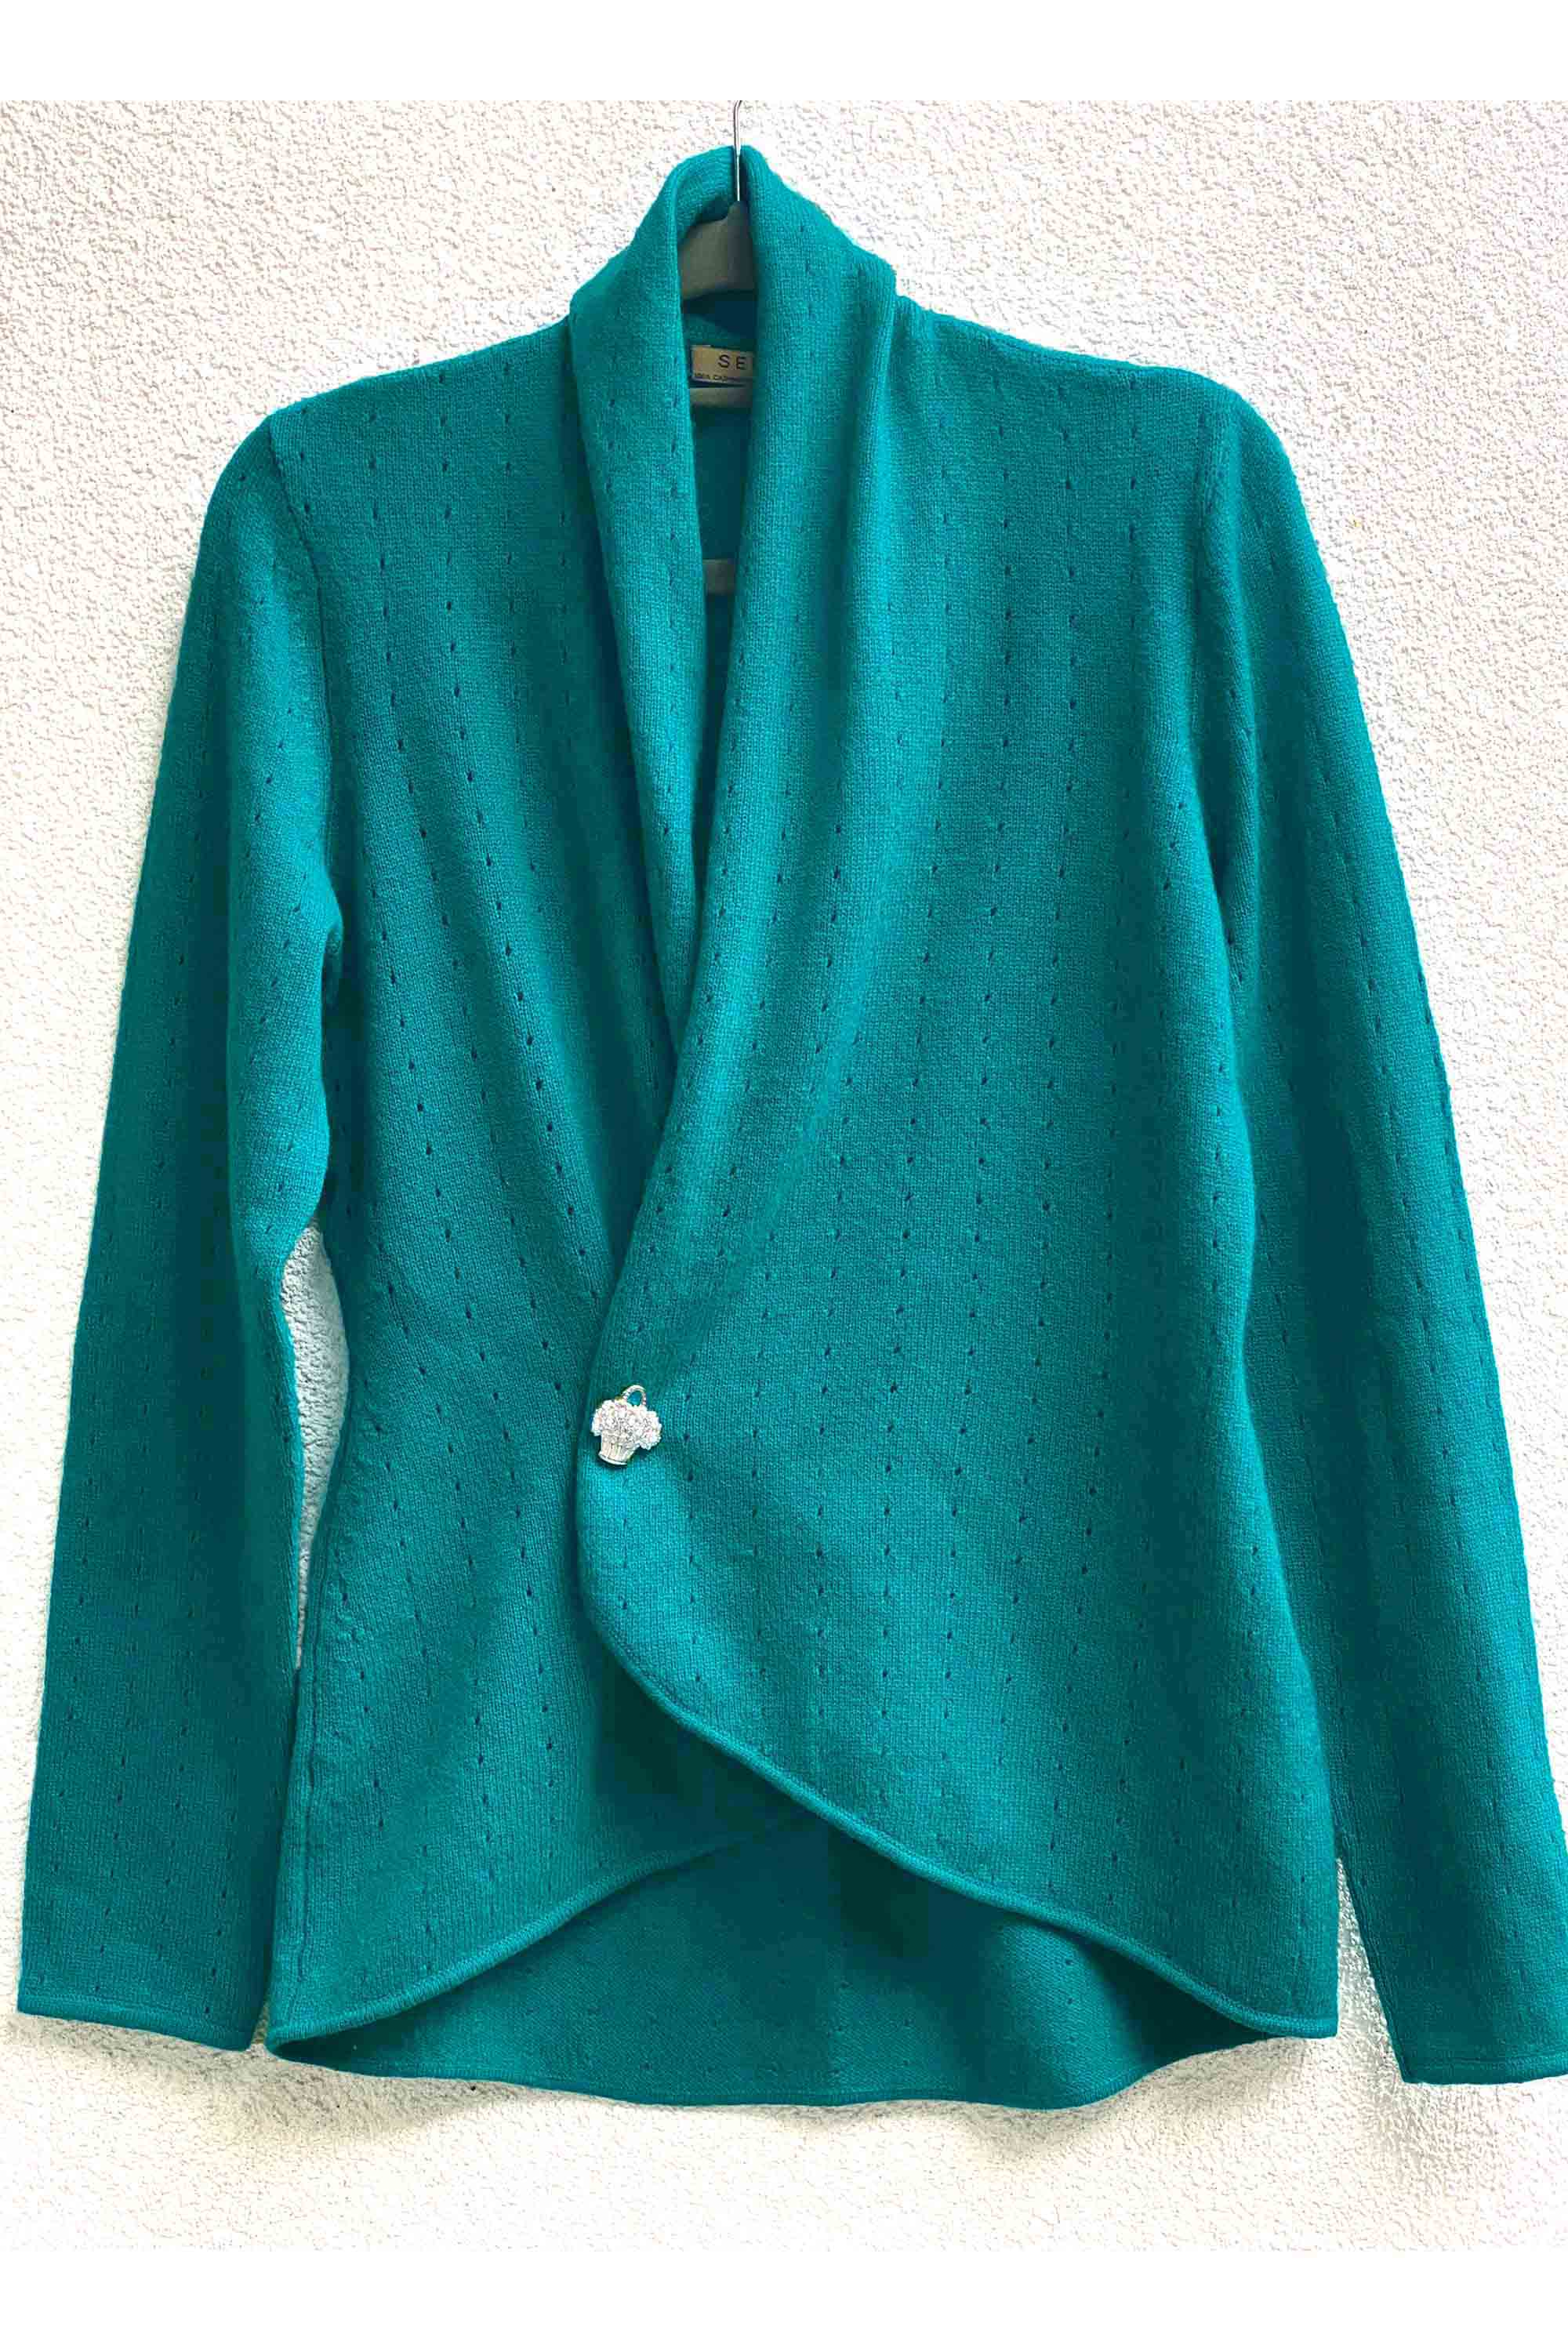 Dark turquoise women's luxury Cashmere cardigan jacket, blue green ladies light weight summer cardigan, open front tailored jacket, fitted shawl neck collared elegant cardigan sale, open V-neck sweater knit London UK | SEMON Cashmere